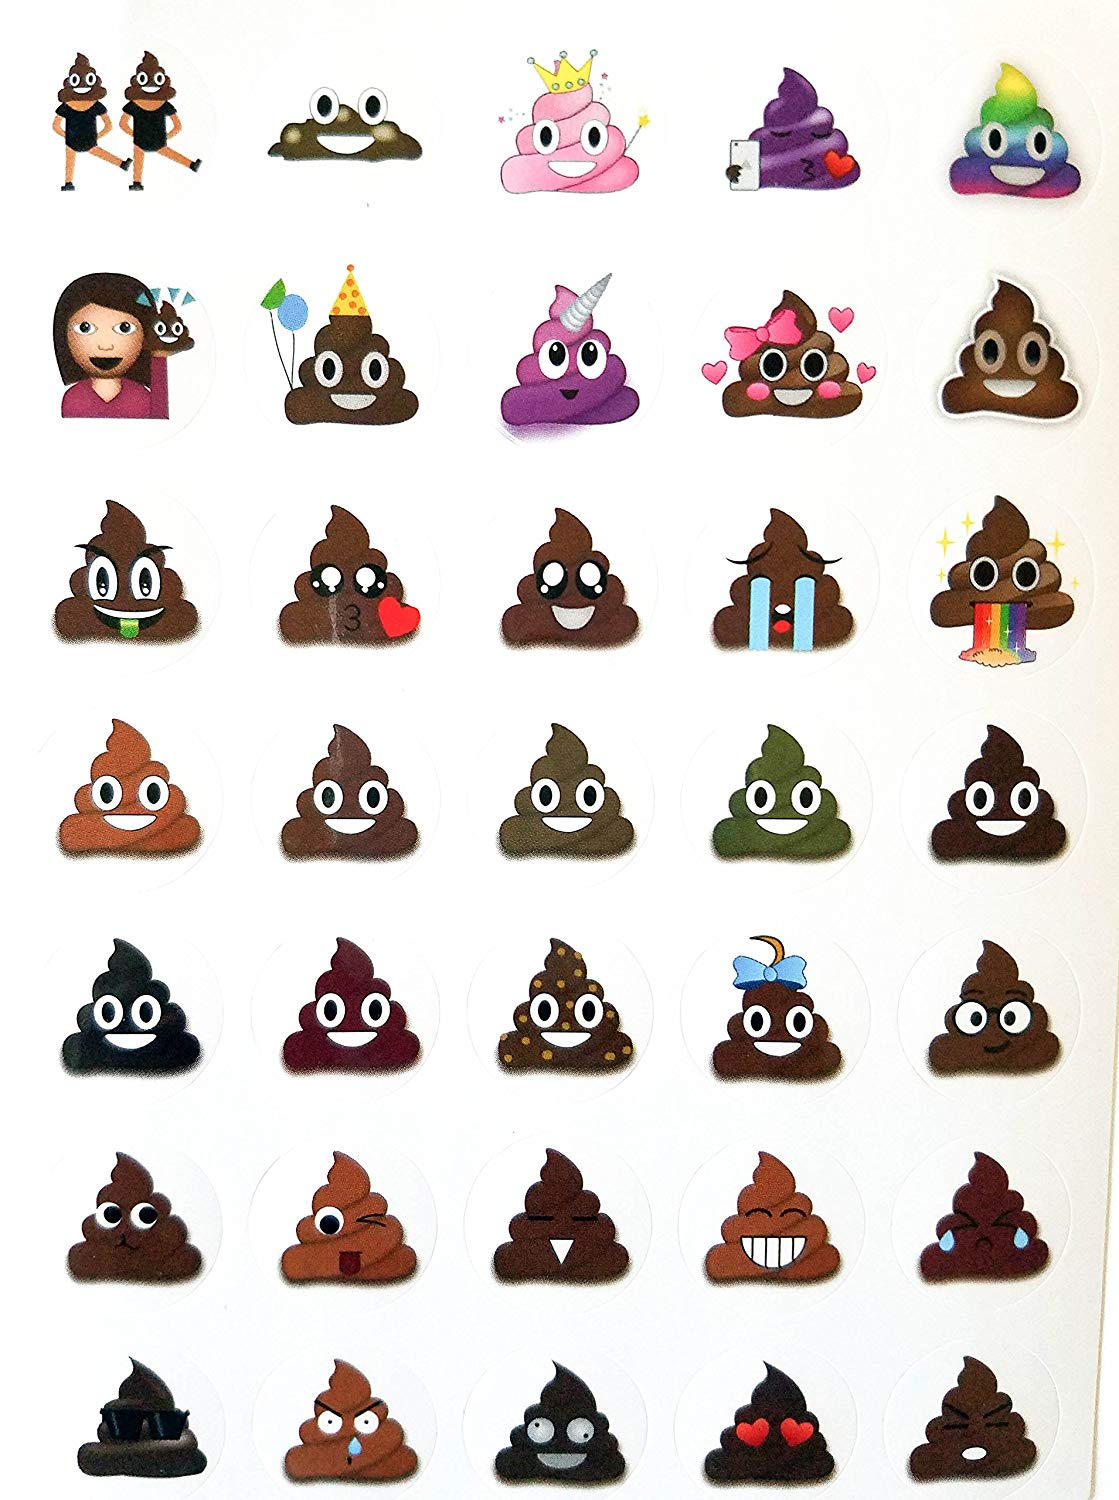 A page of poop emoji stickers including princess poop, birthday poop, and love heart poop